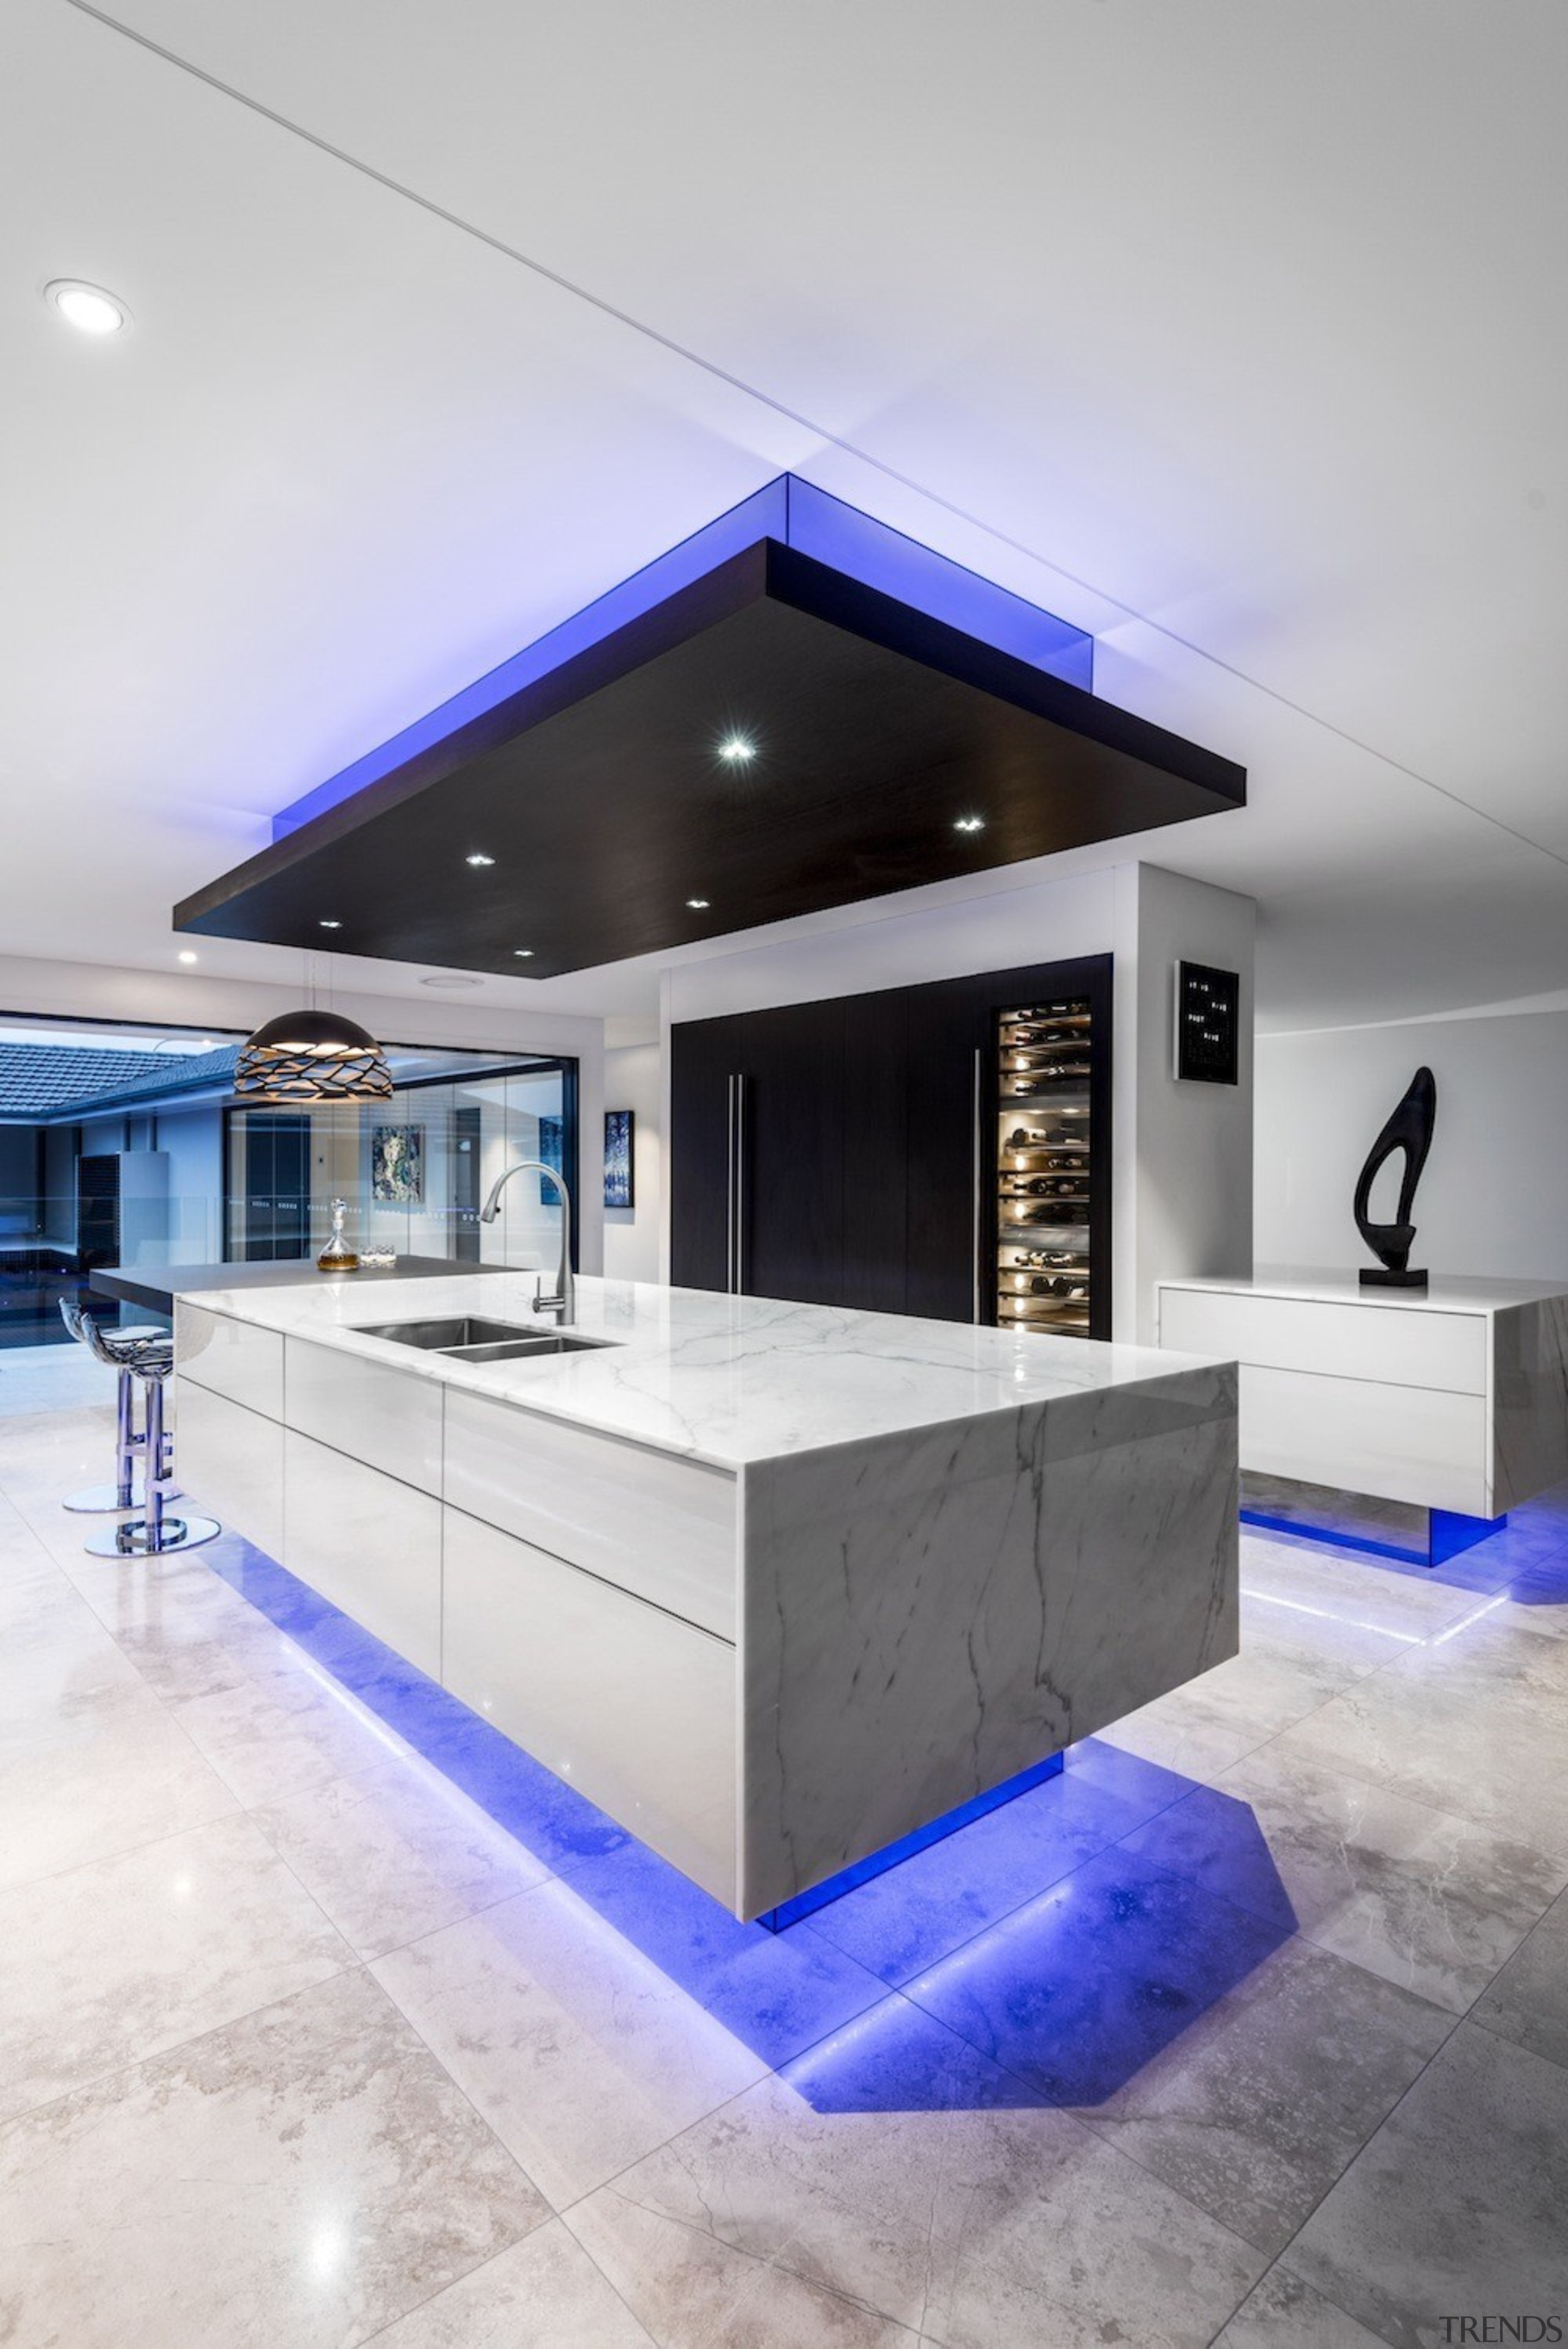 A focus on lighting – Kitchen by designer architecture, ceiling, countertop, interior design, kitchen, table, gray, white